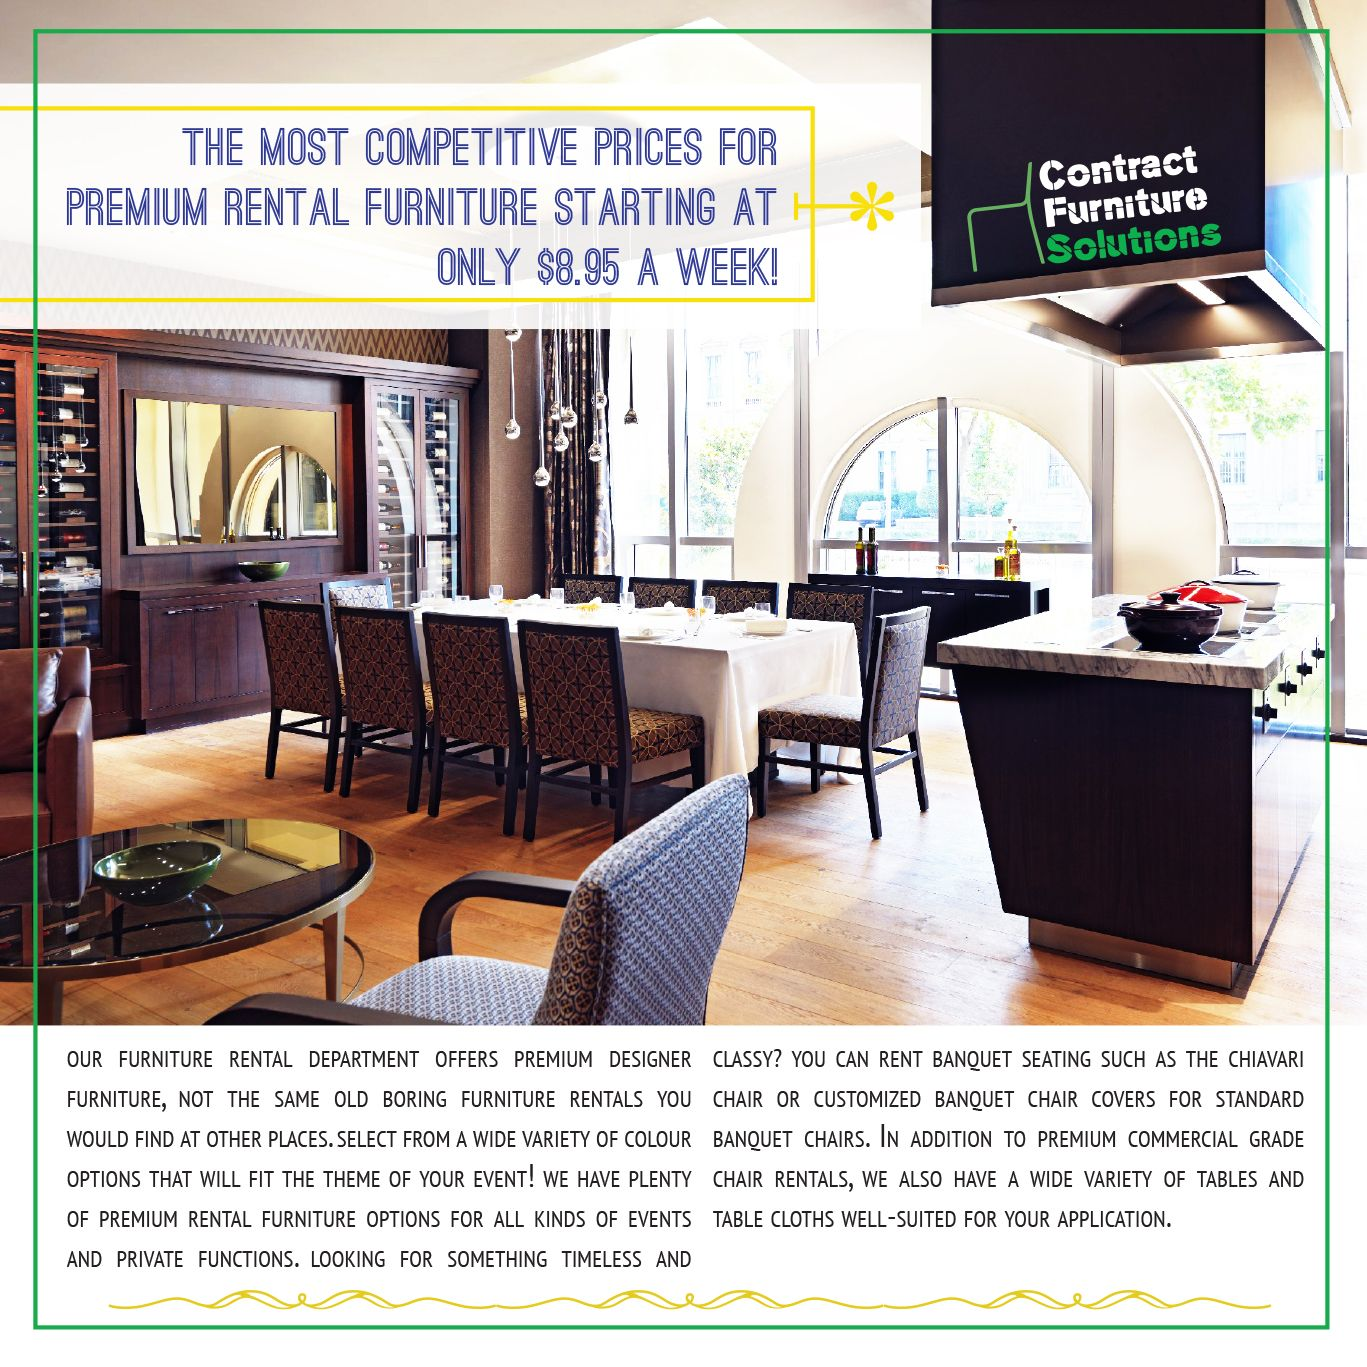 Contract Furniture Solutions Is Proud To Bring To You Our Commercial  Furniture Rental Department For Restaurants